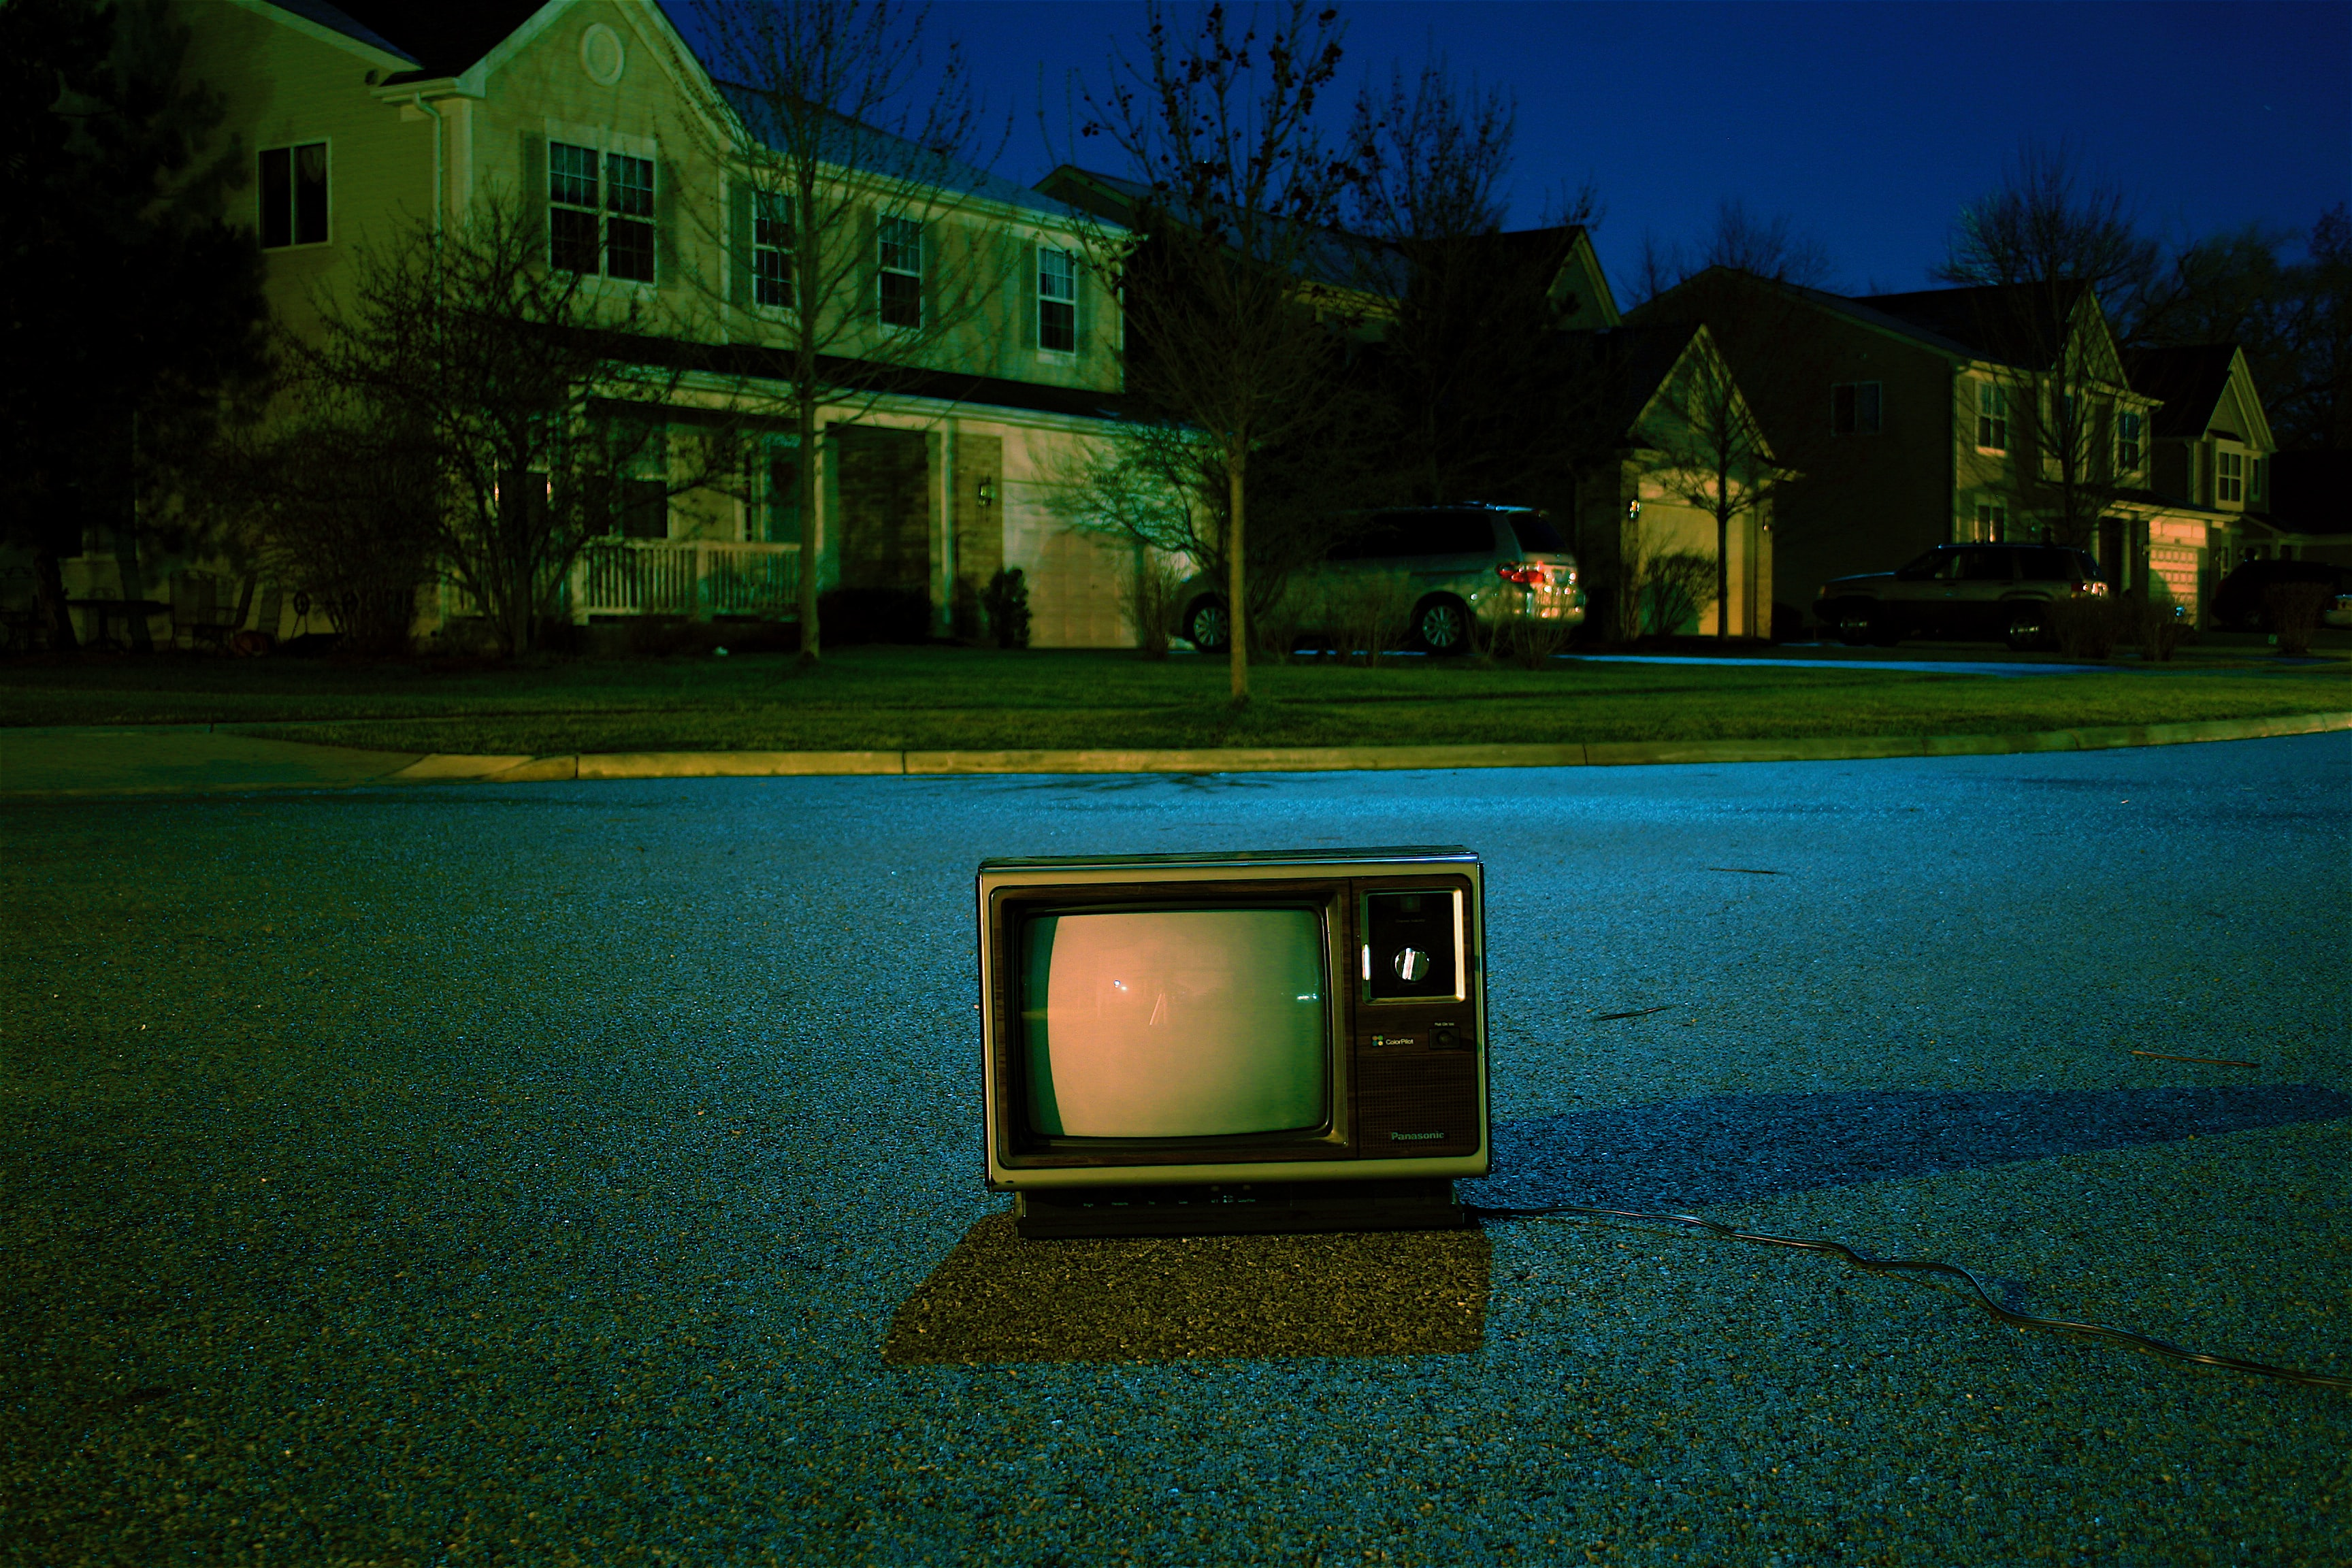 turned off vintage CRT television on road